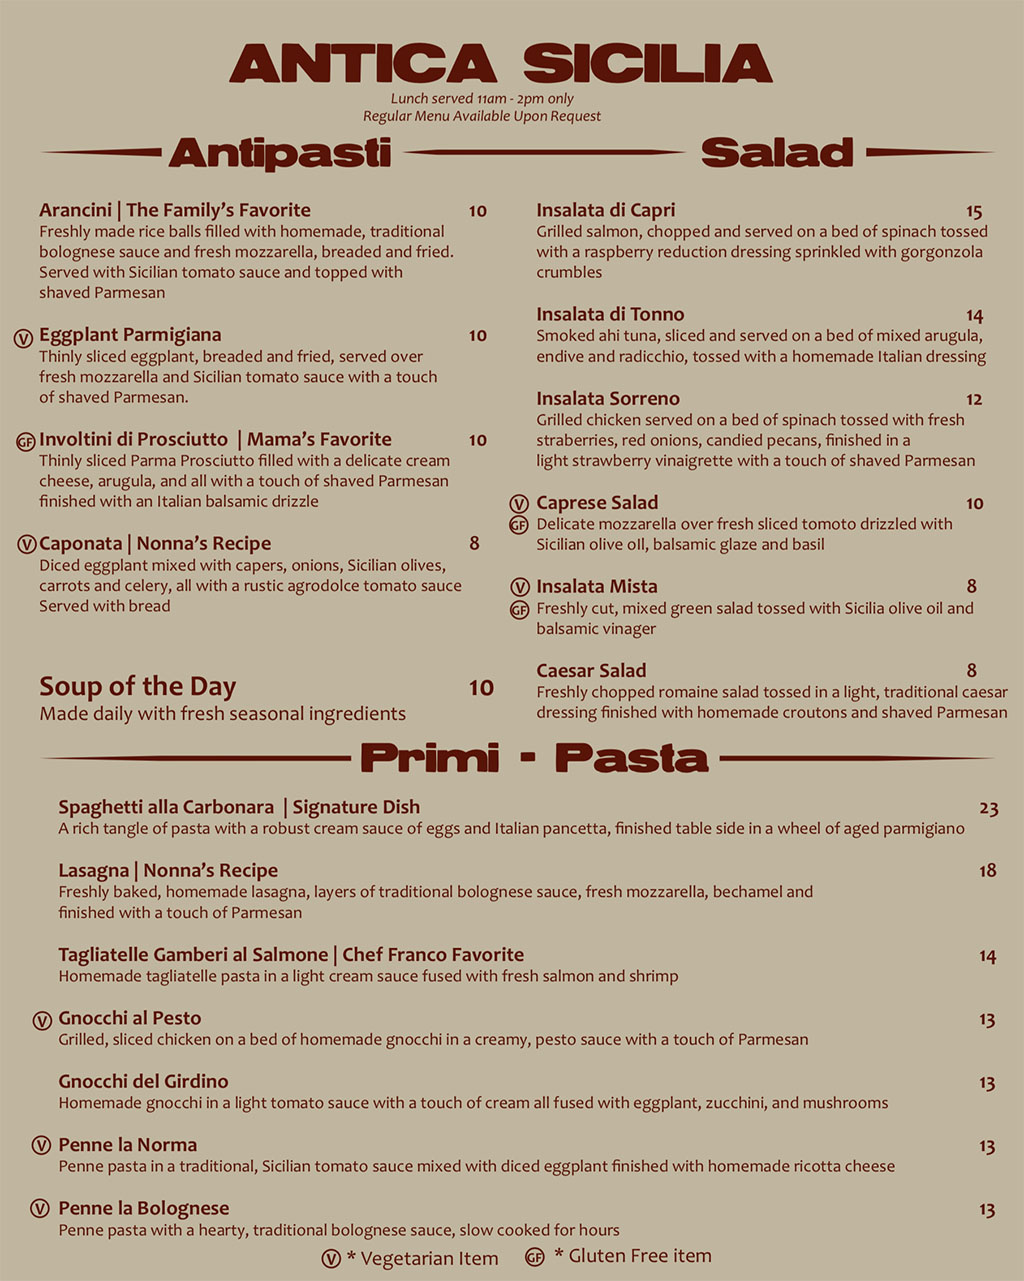 Antica Sicilia lunch menu - appetizers, soup, salad, pasta